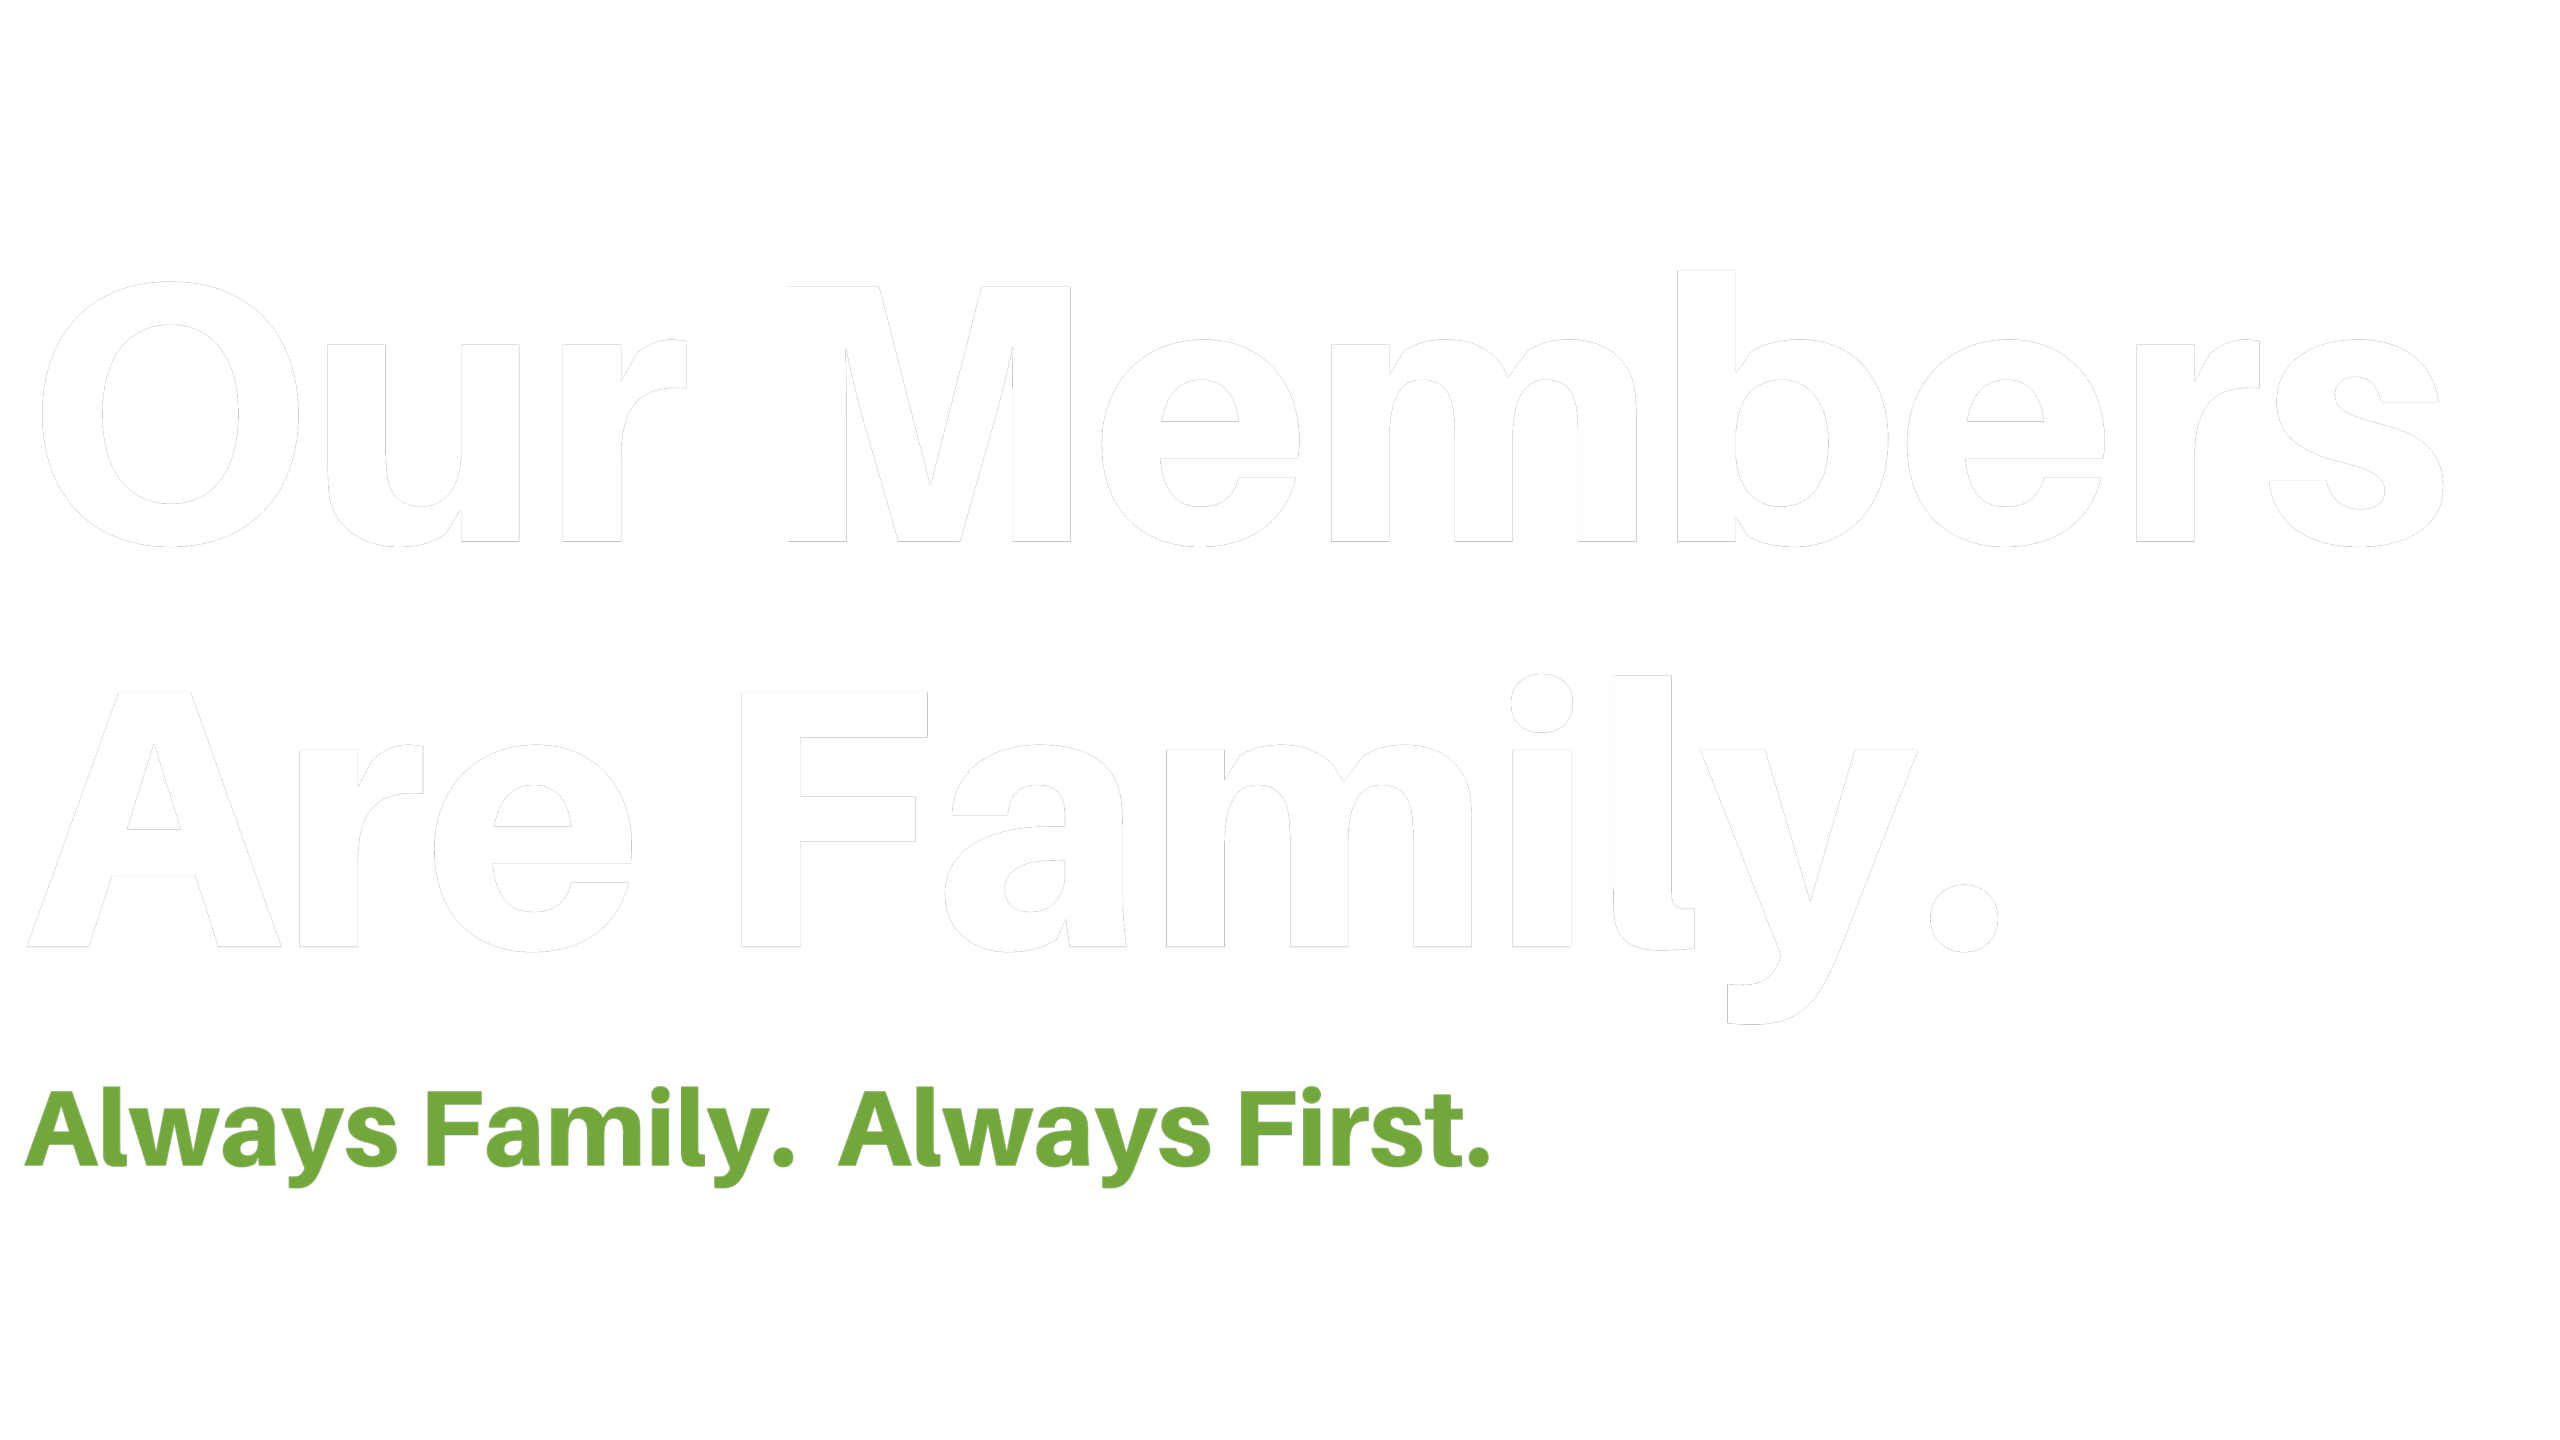 Our members are family. Always family. Always first.